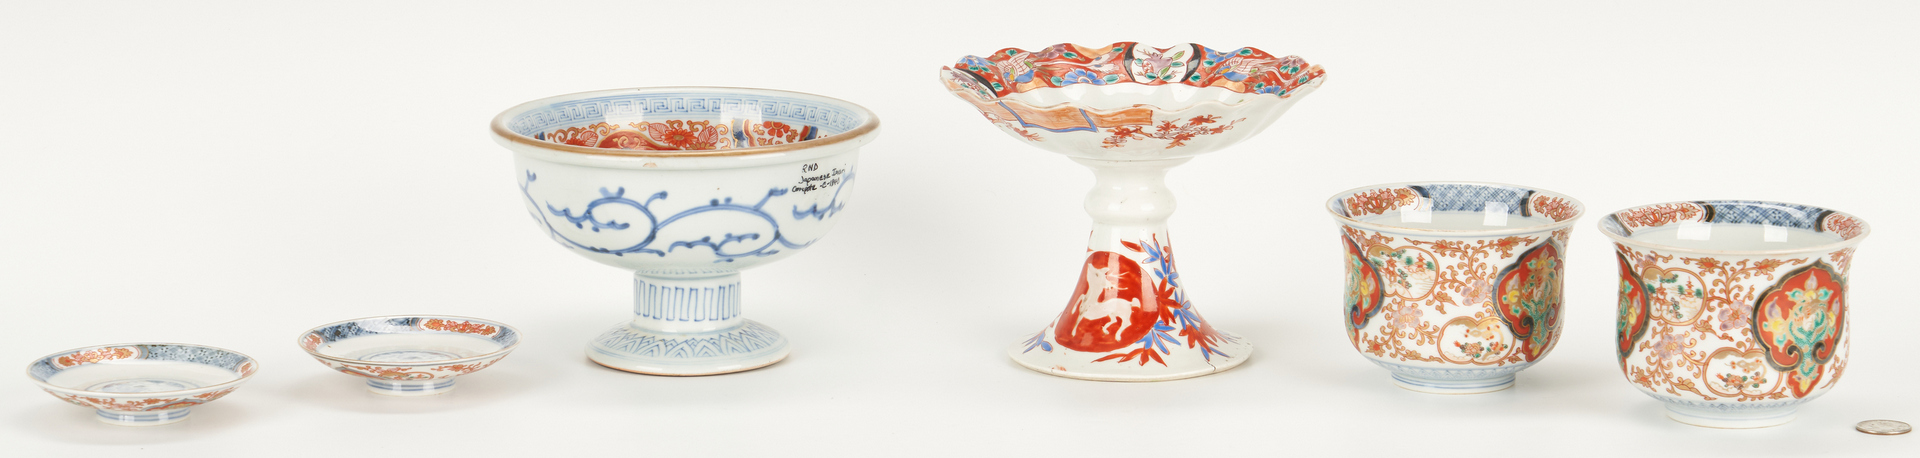 Lot 997: 2 Japanese Porcelain Compotes and Pair Bowls